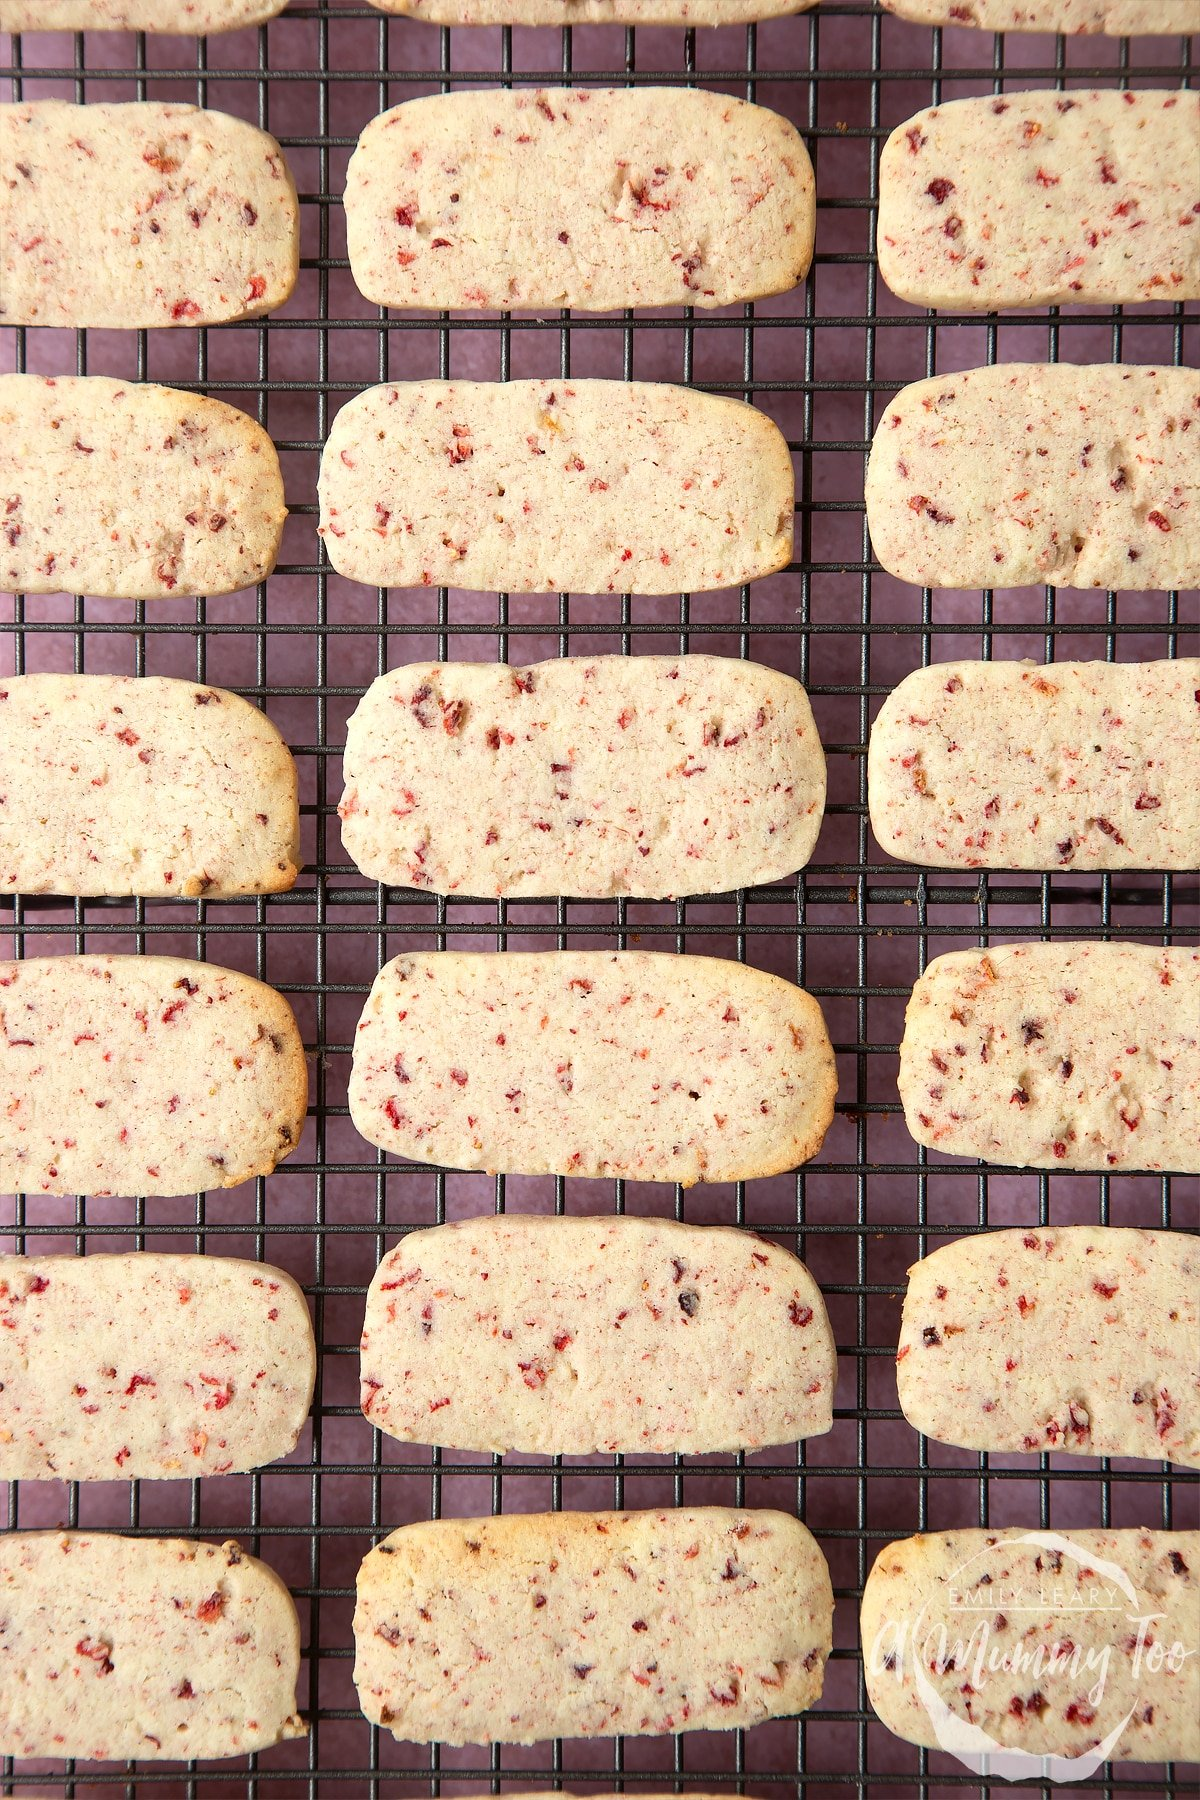 Strawberry biscuits lined up in rows on a cooling rack.